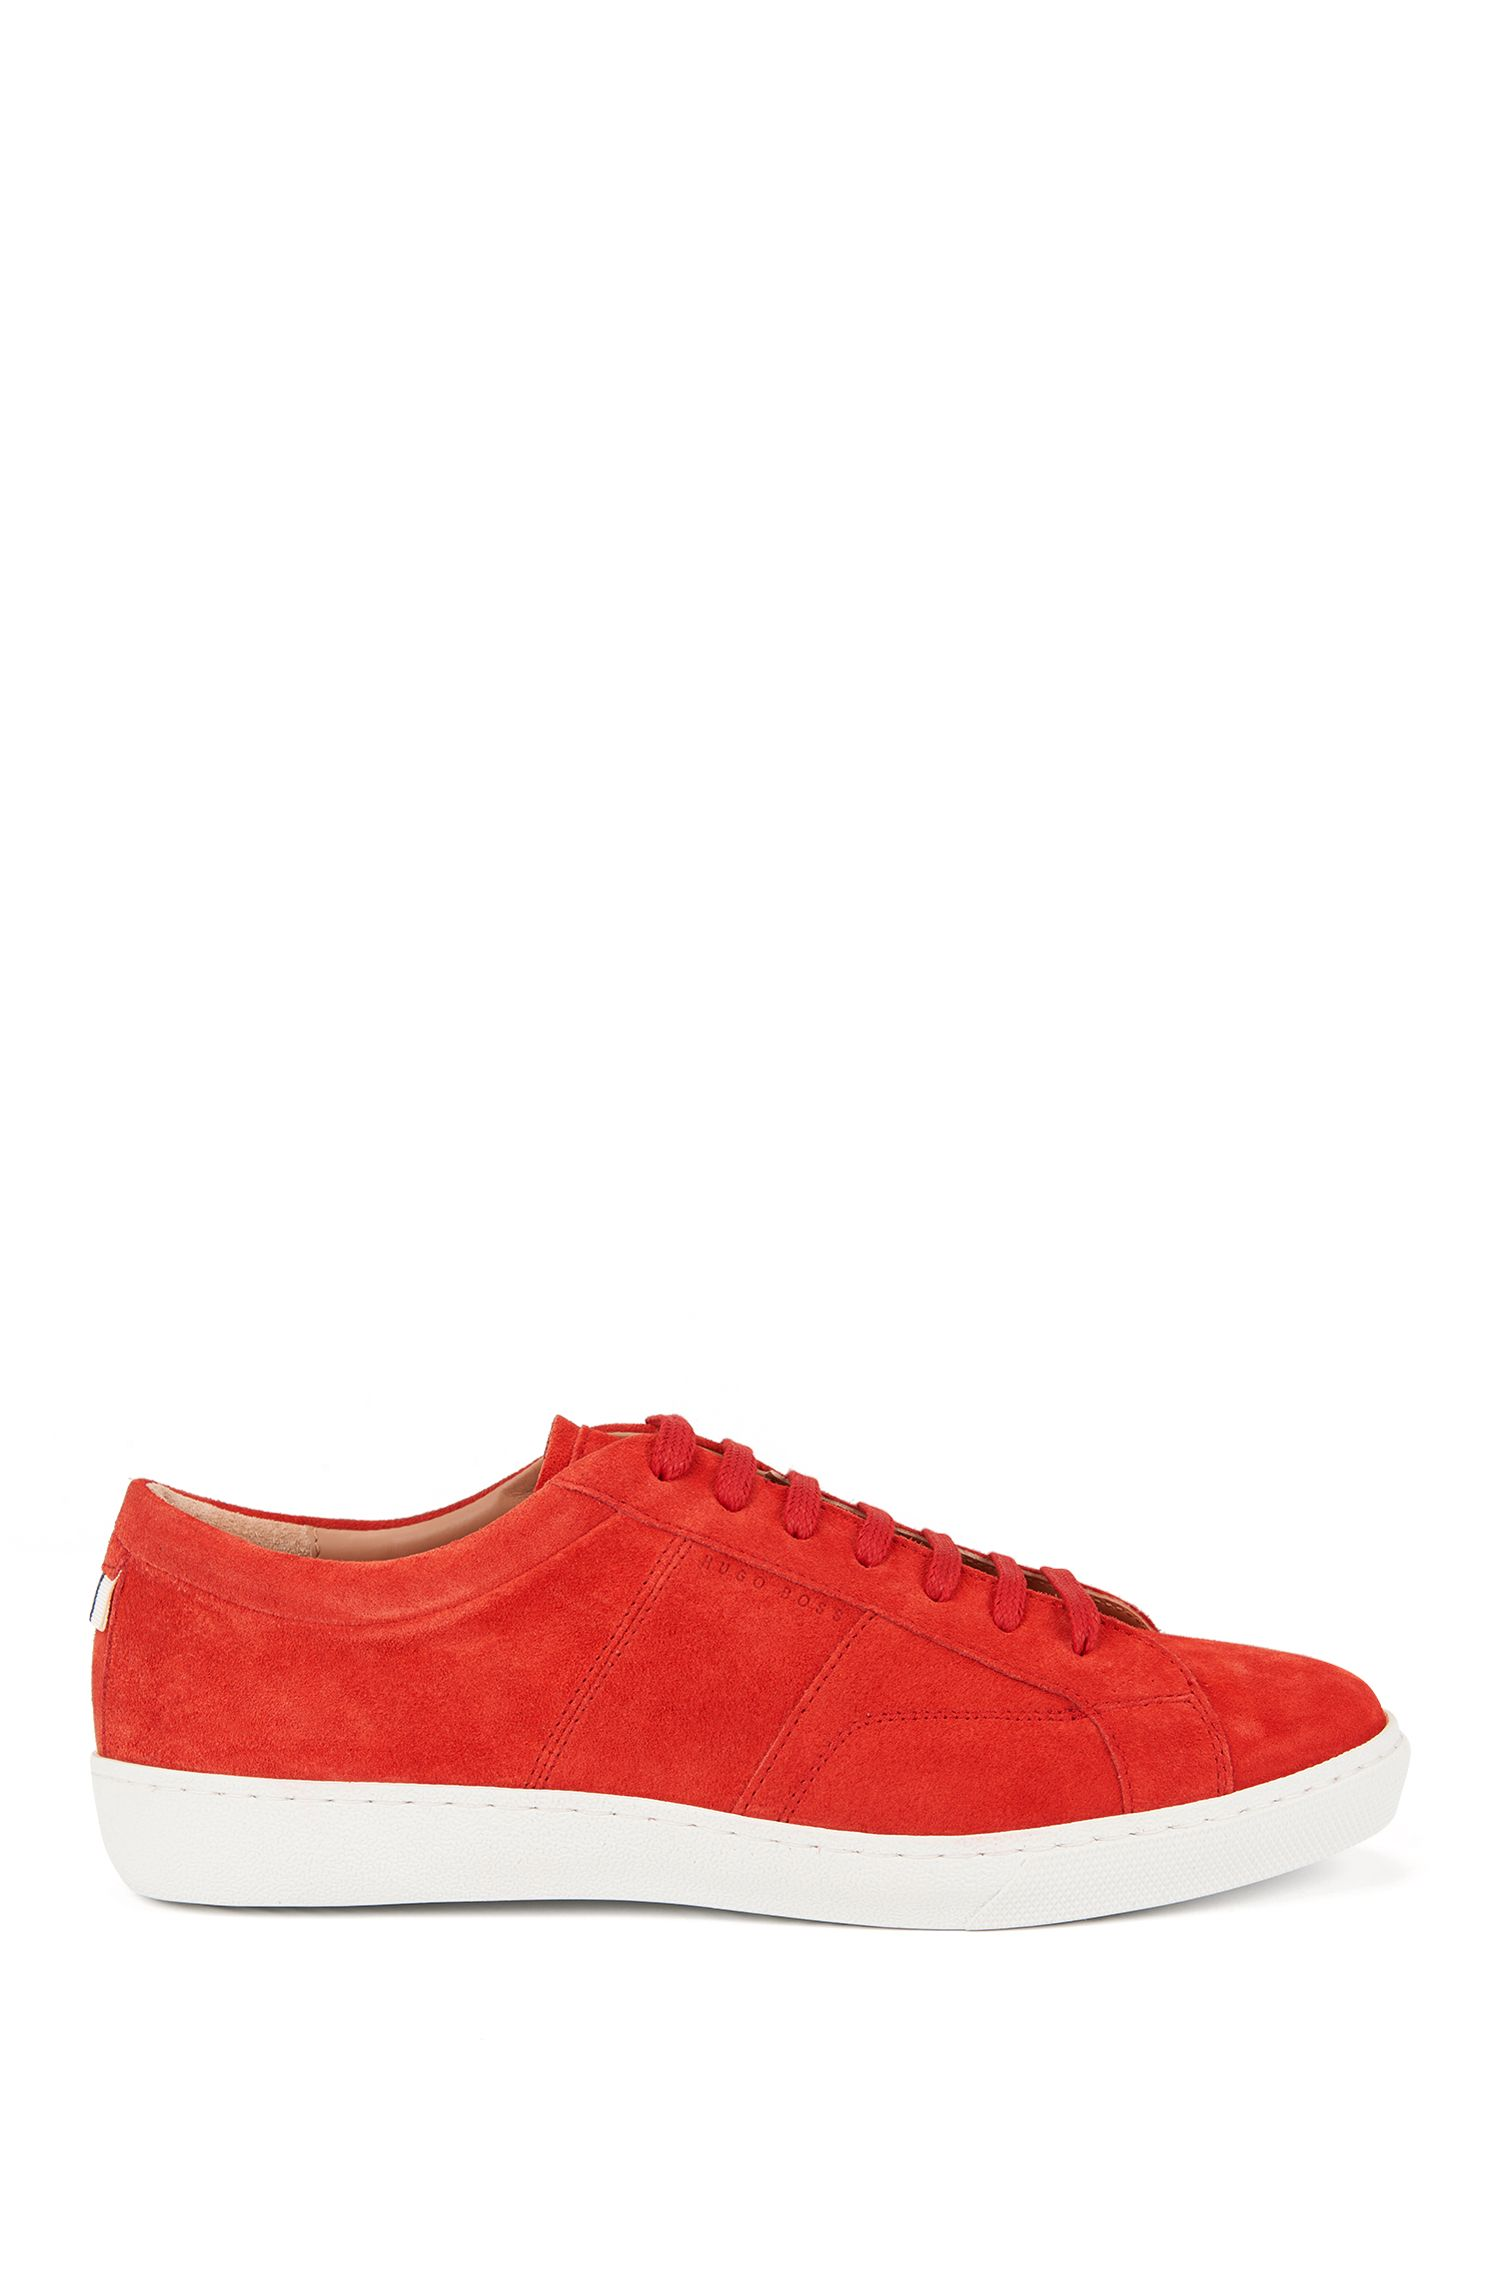 Low-top trainers in soft Italian suede